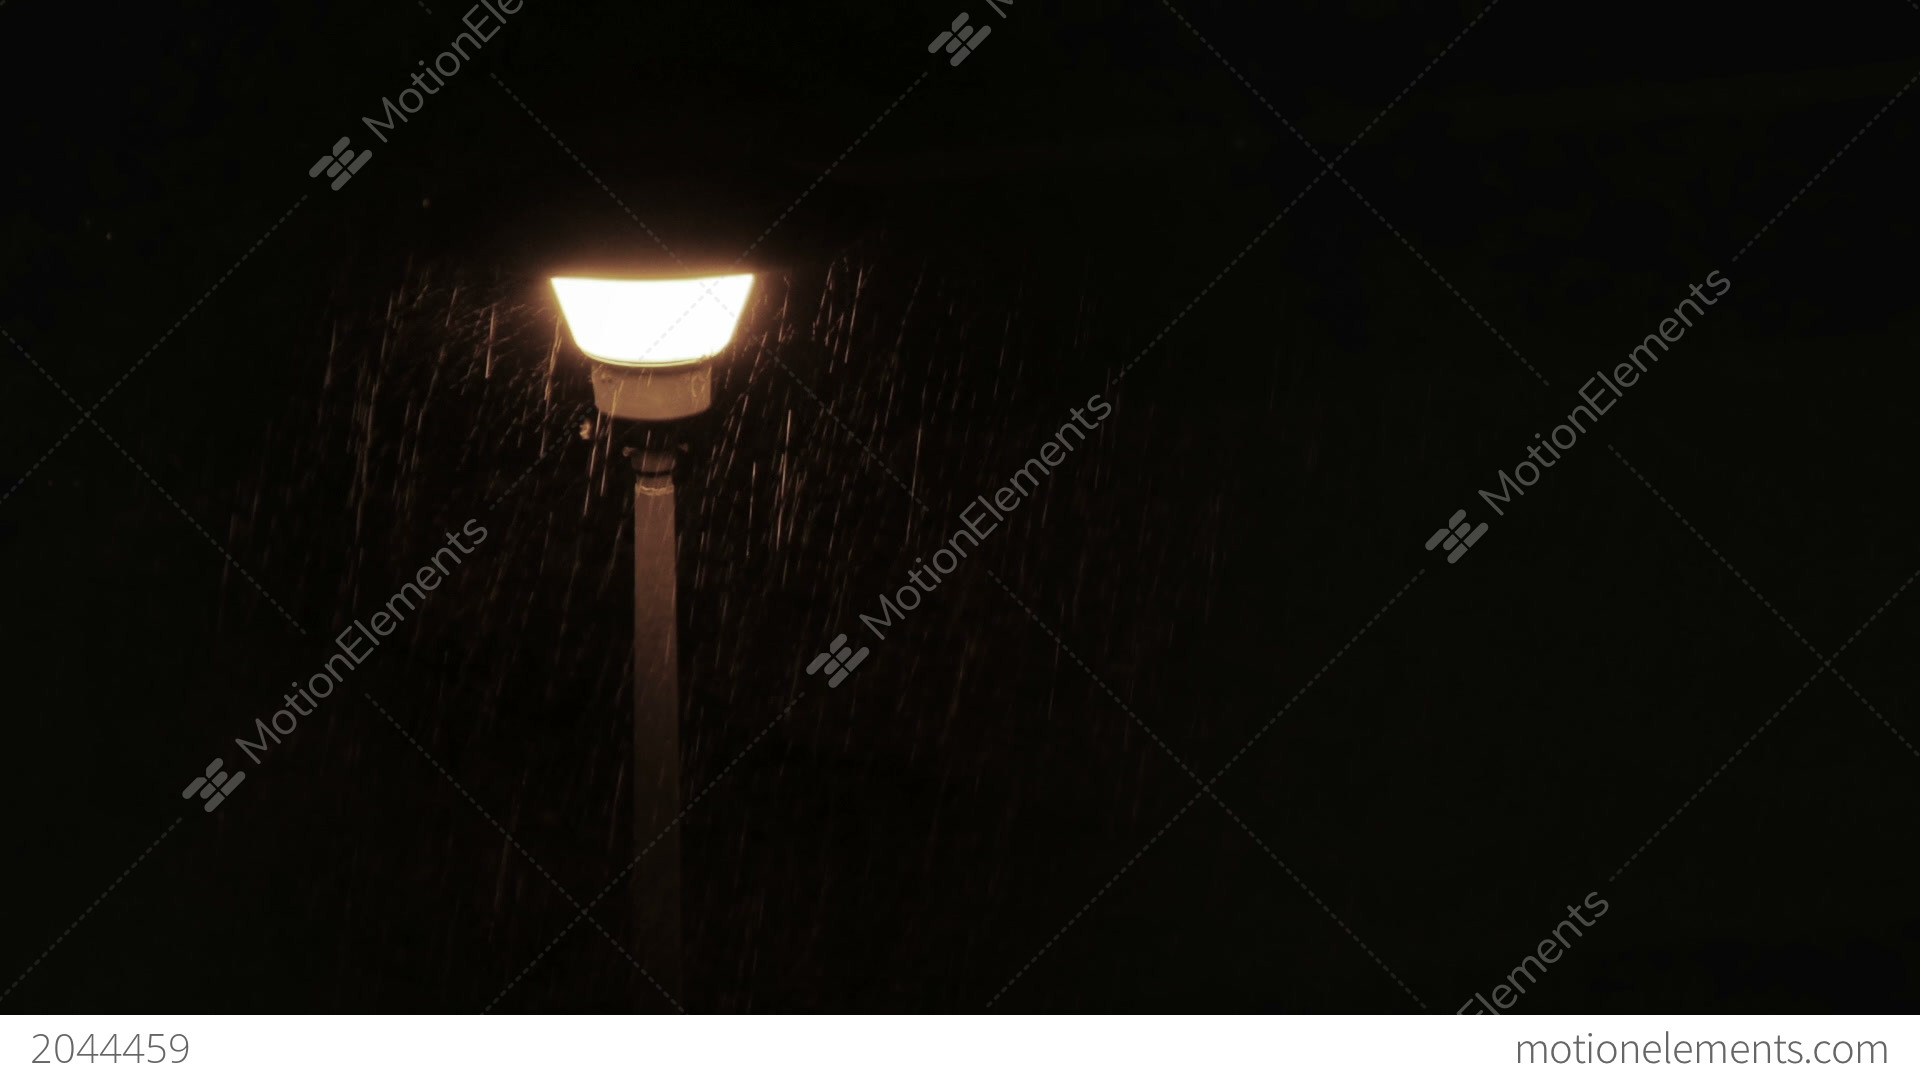 http://p.motionelements.com/stock-video/nature/me2044459-moth-flying-around-street-lamp-during-rain-hd-a0150.jpg